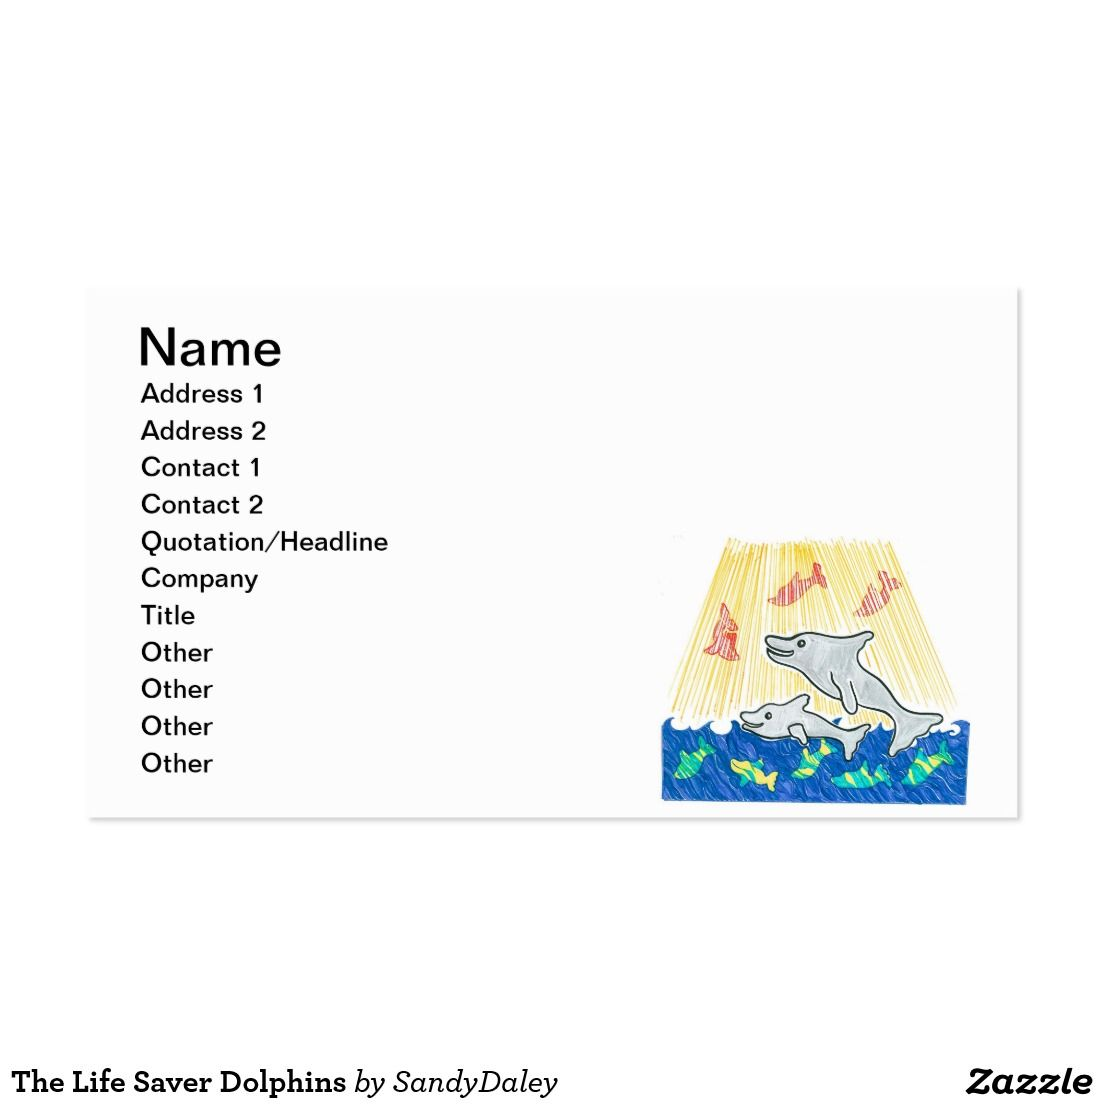 The Life Saver Dolphins Business Card | Lifesaver Dolphins ...